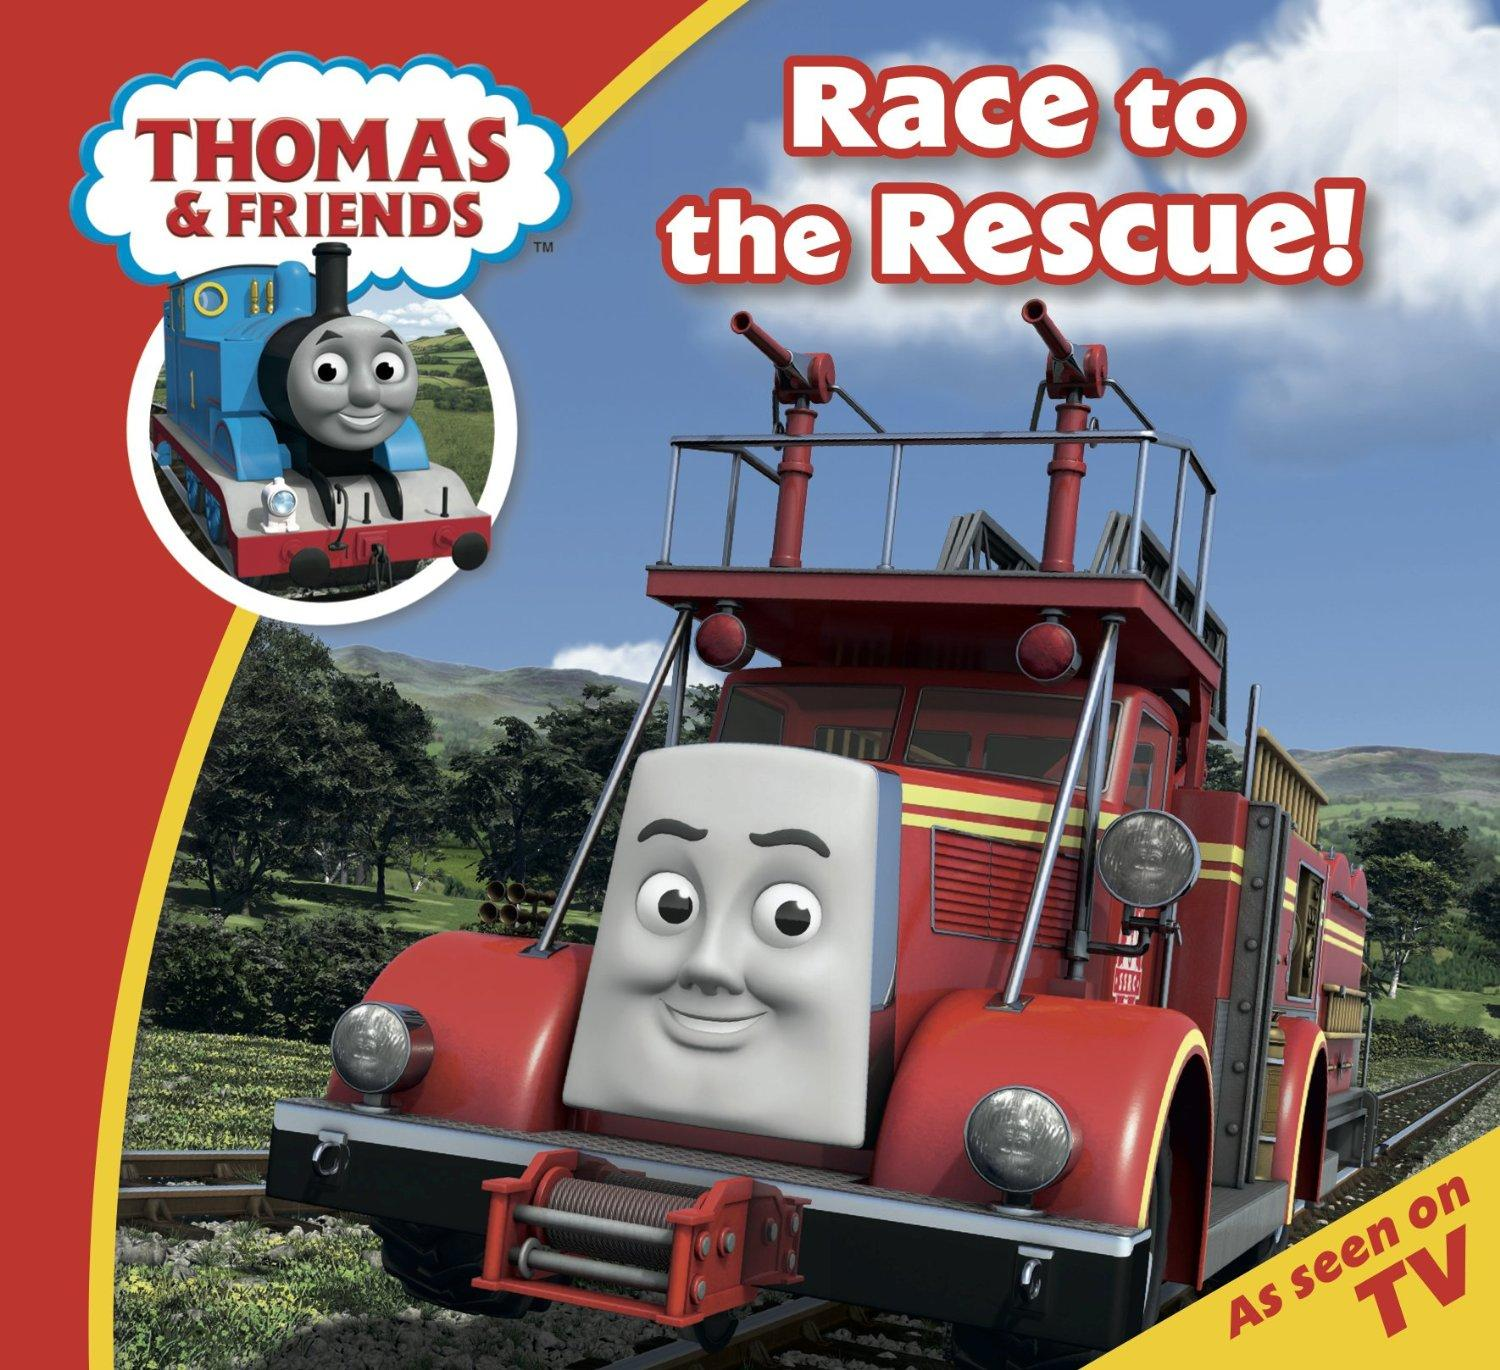 Thomas & Friends - Race to the Rescue